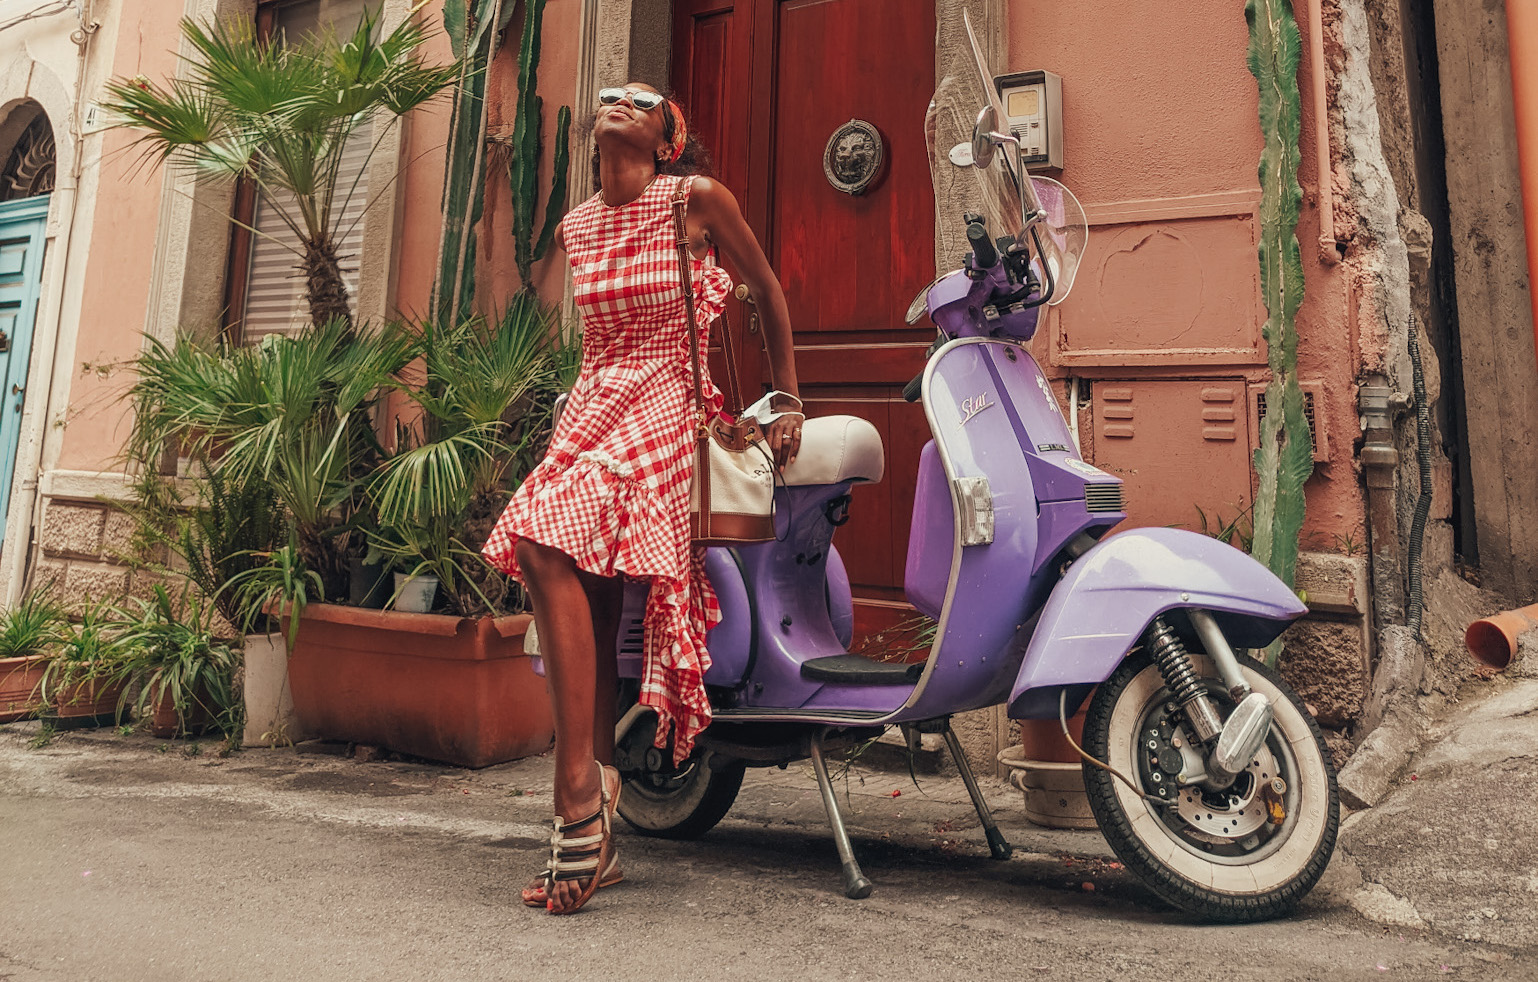 woman in front of purple Vespa in red check dress